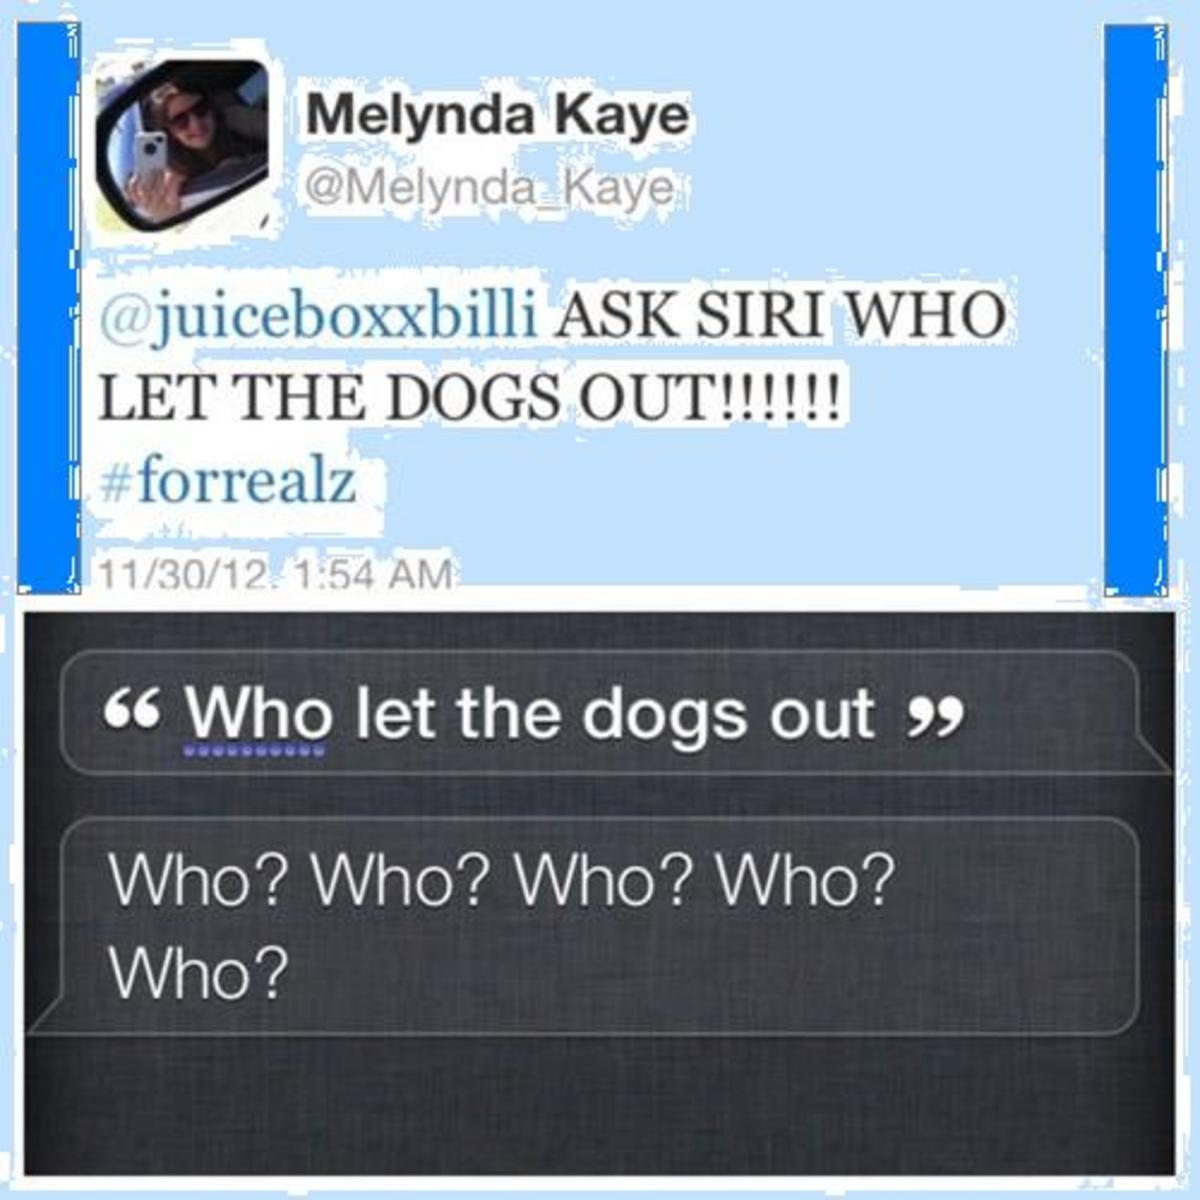 Funny Jokes And Quotes For Friends A Girl Says To Her: Funny Jokes To Ask Siri